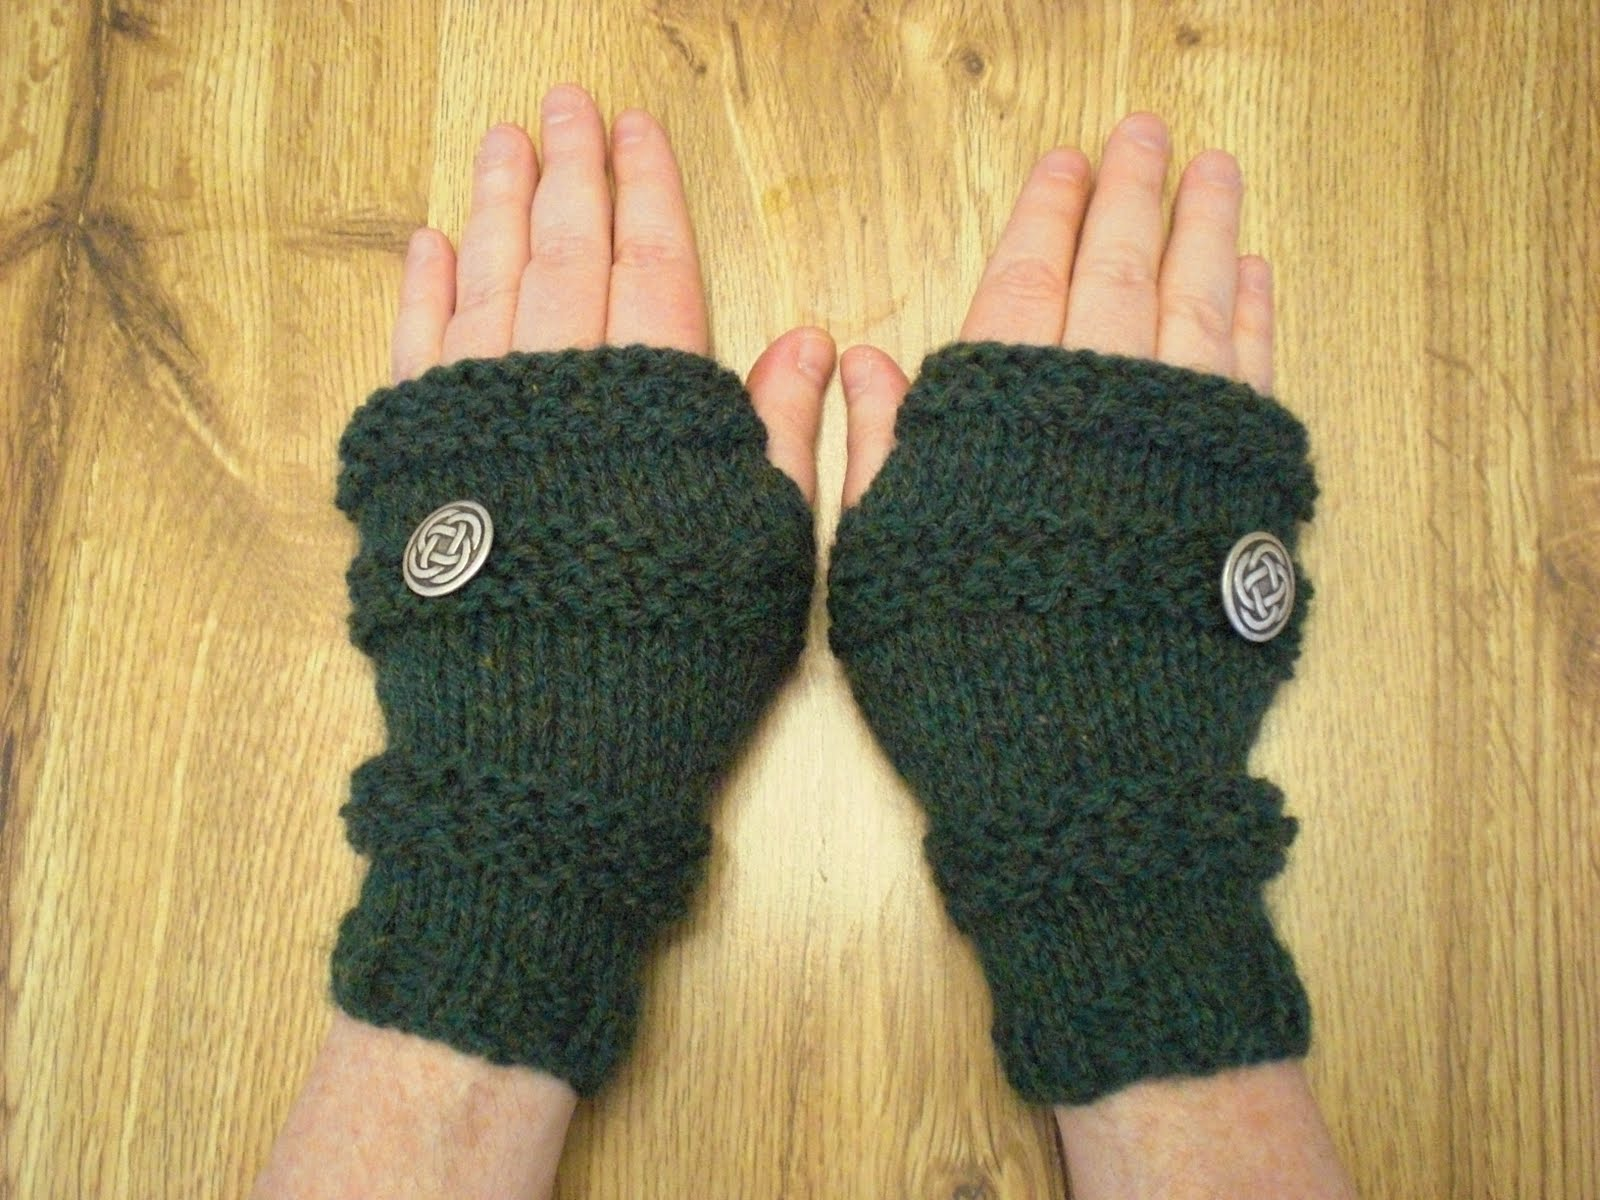 Fingerless gloves edmonton - See I Don T Really Have Long And Slender If Somewhat Bluish Fingers No I Have Stubby Chubbies And A Broad Palm But Baby I Can Still Work Magic With